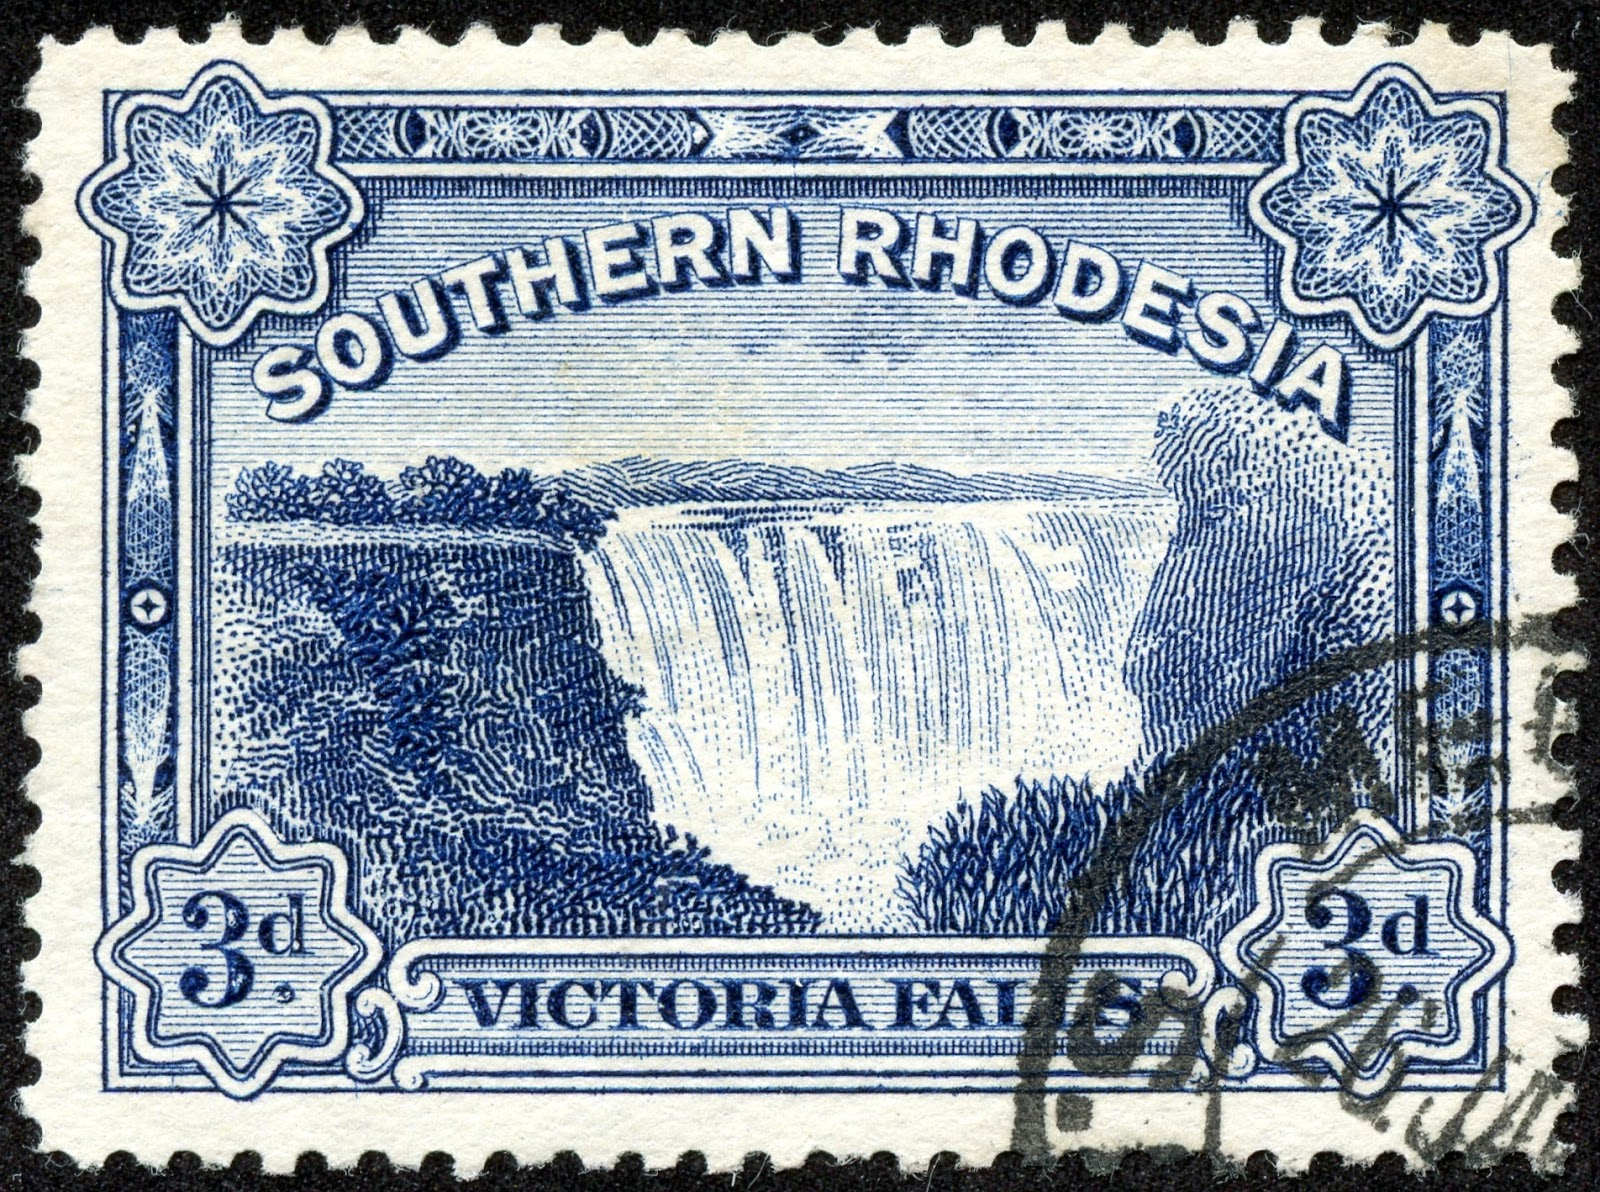 Big Blue 1840 1940 Southern Rhodesia